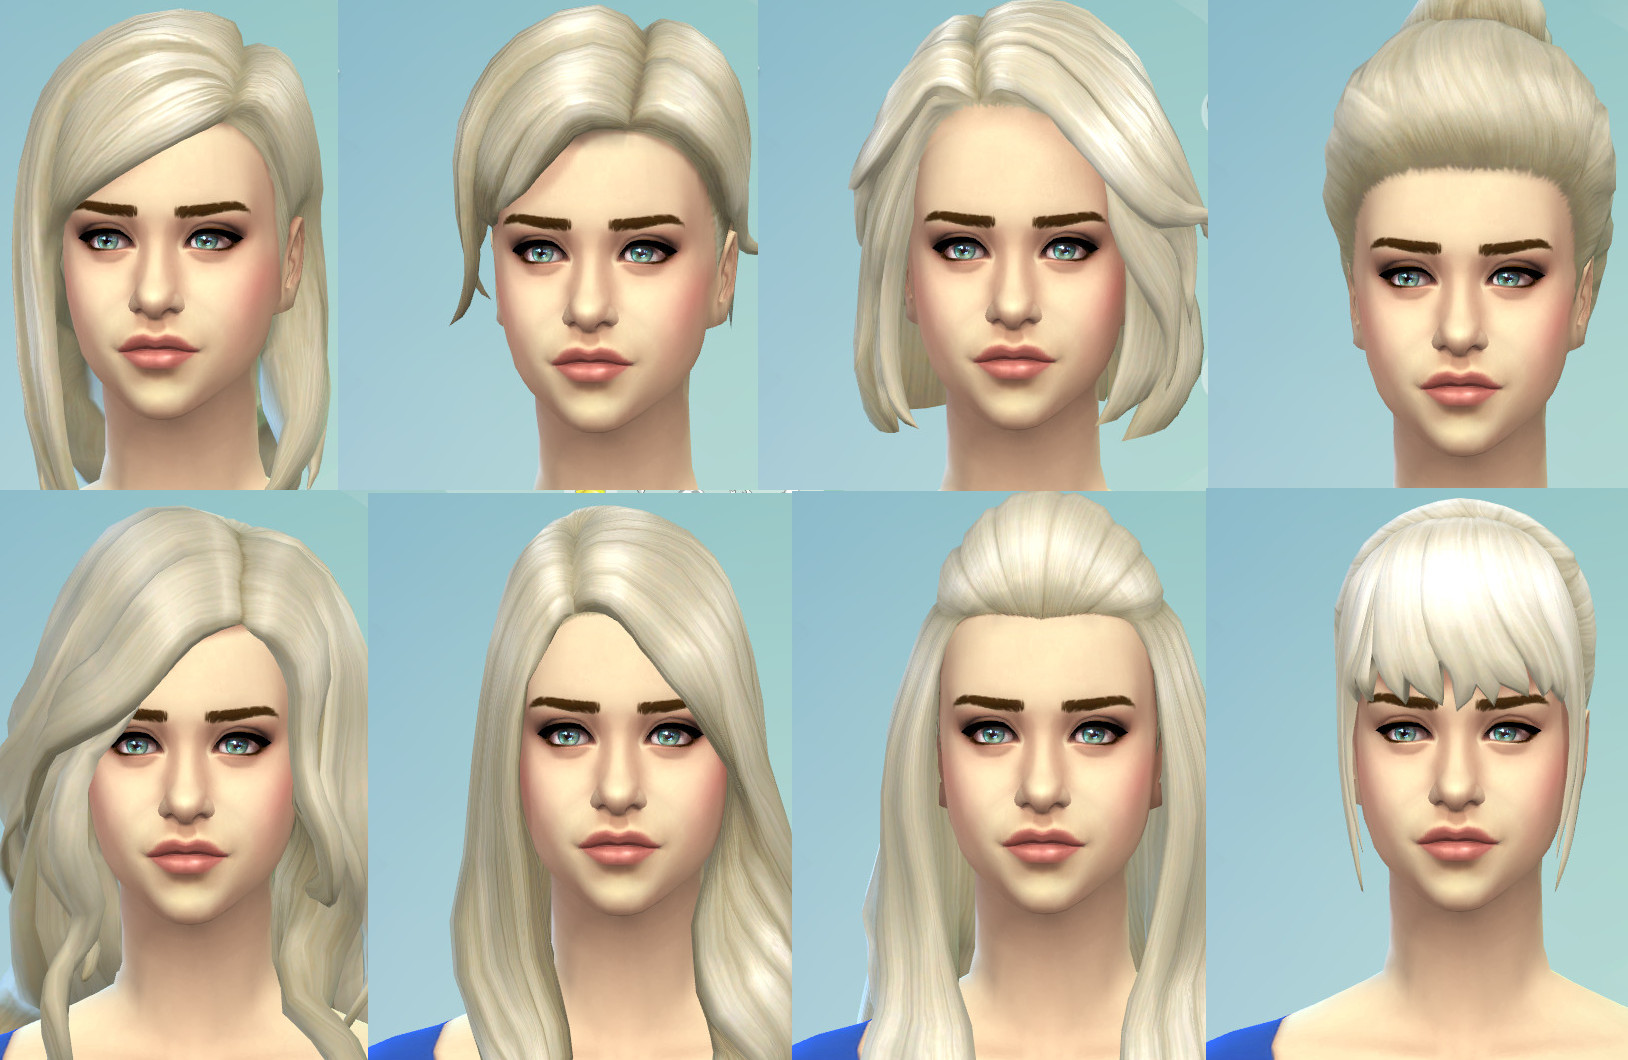 Targaryen Blonde hairs by kellyhb5